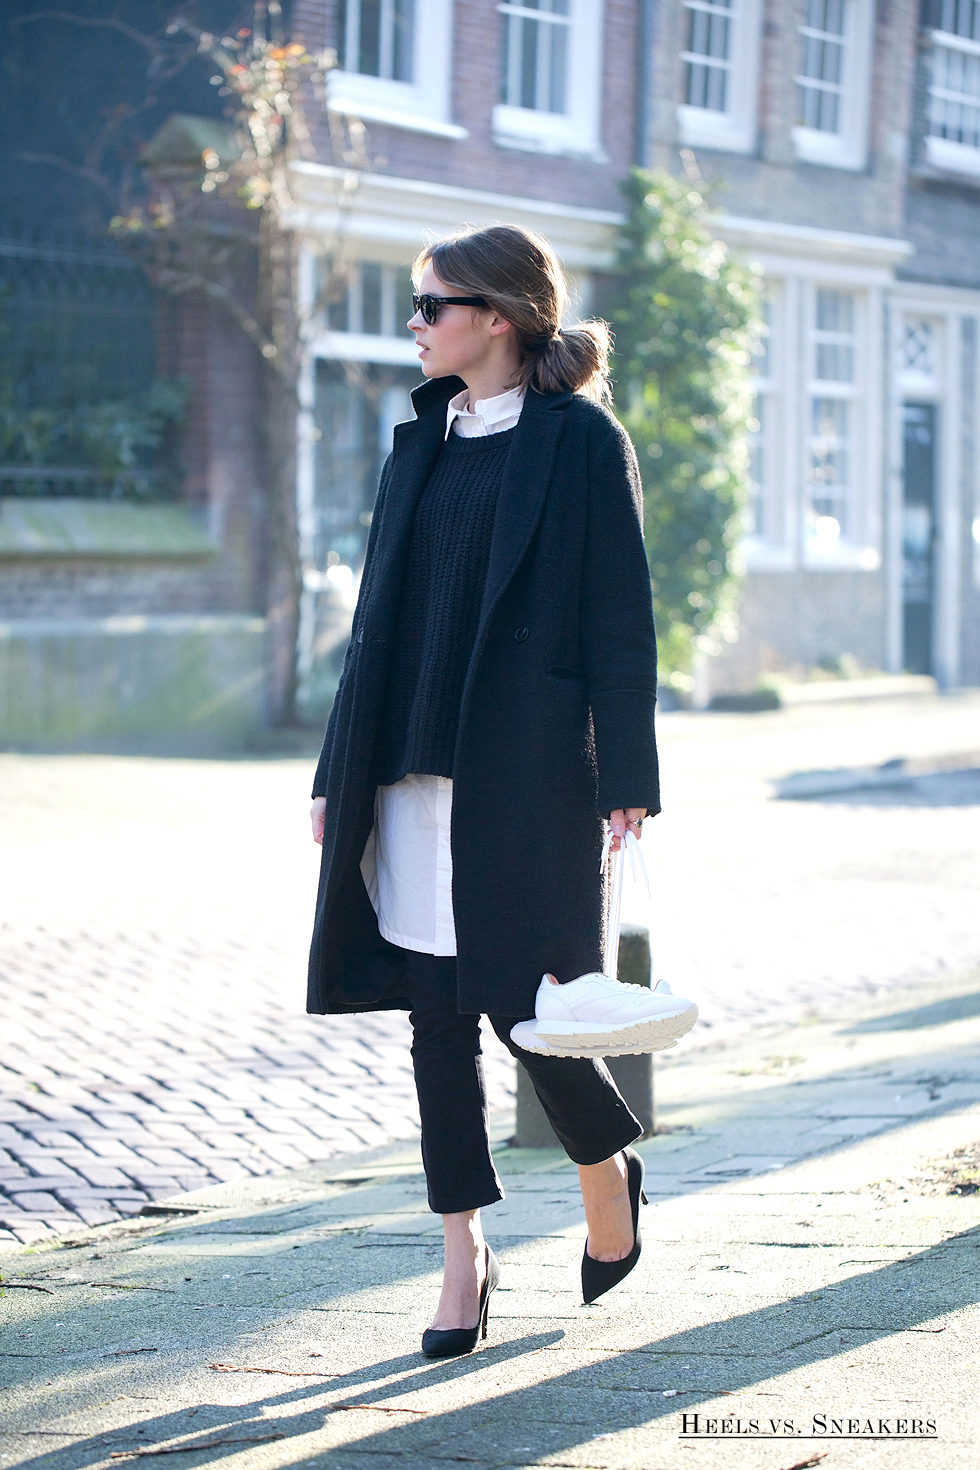 Christine R. is showing us how to wear the black and white trend, creating an ultra sophisticated look by pairing a white shirt with navy knitwear and a smart matching overcoat. Coat/Shirt: H&M, Sweater: Ganni, Jeans: BDG, Shoes: Tamara Mellon.